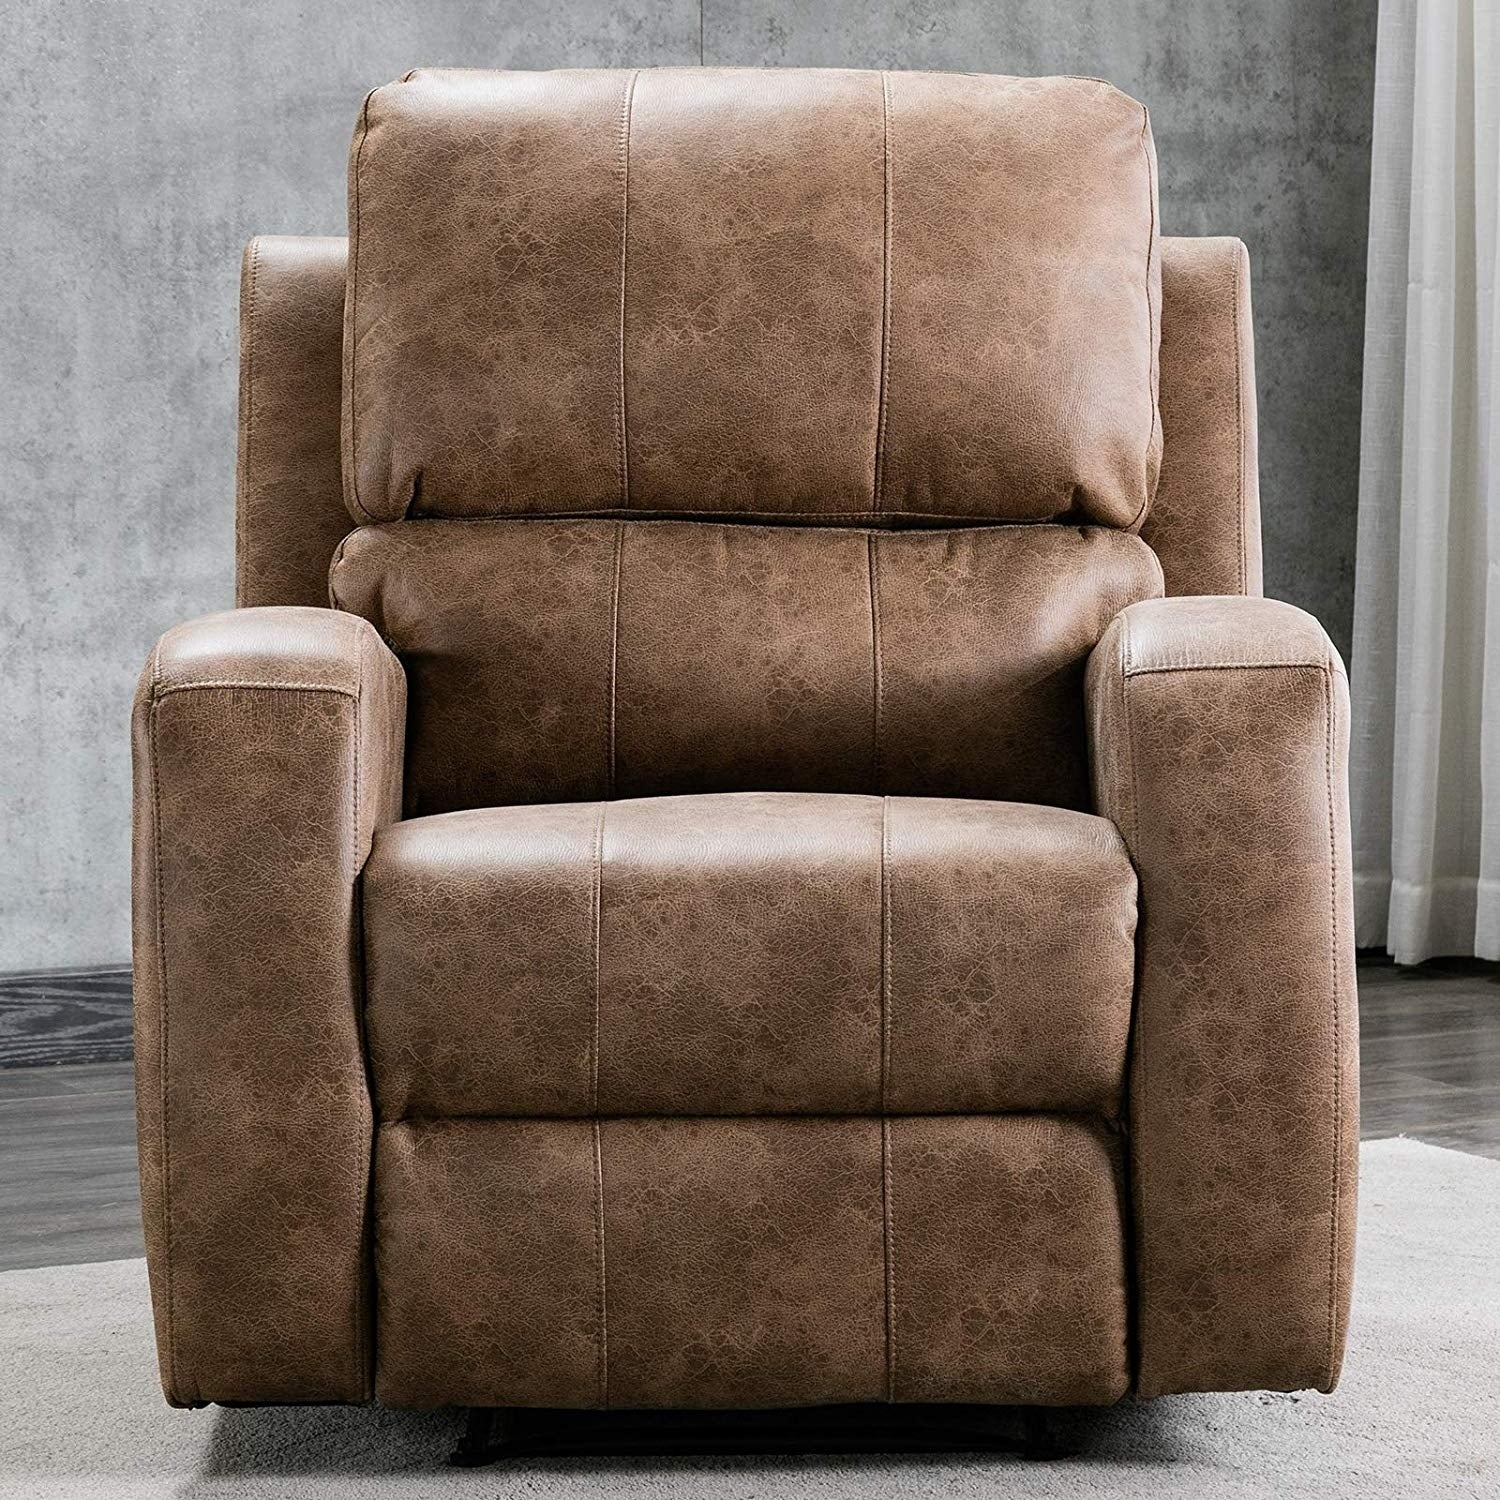 Power Recliner Chair Air Suede Overstuffed Electric Faux Suede Leather Recliner Chair with USB Charge Port